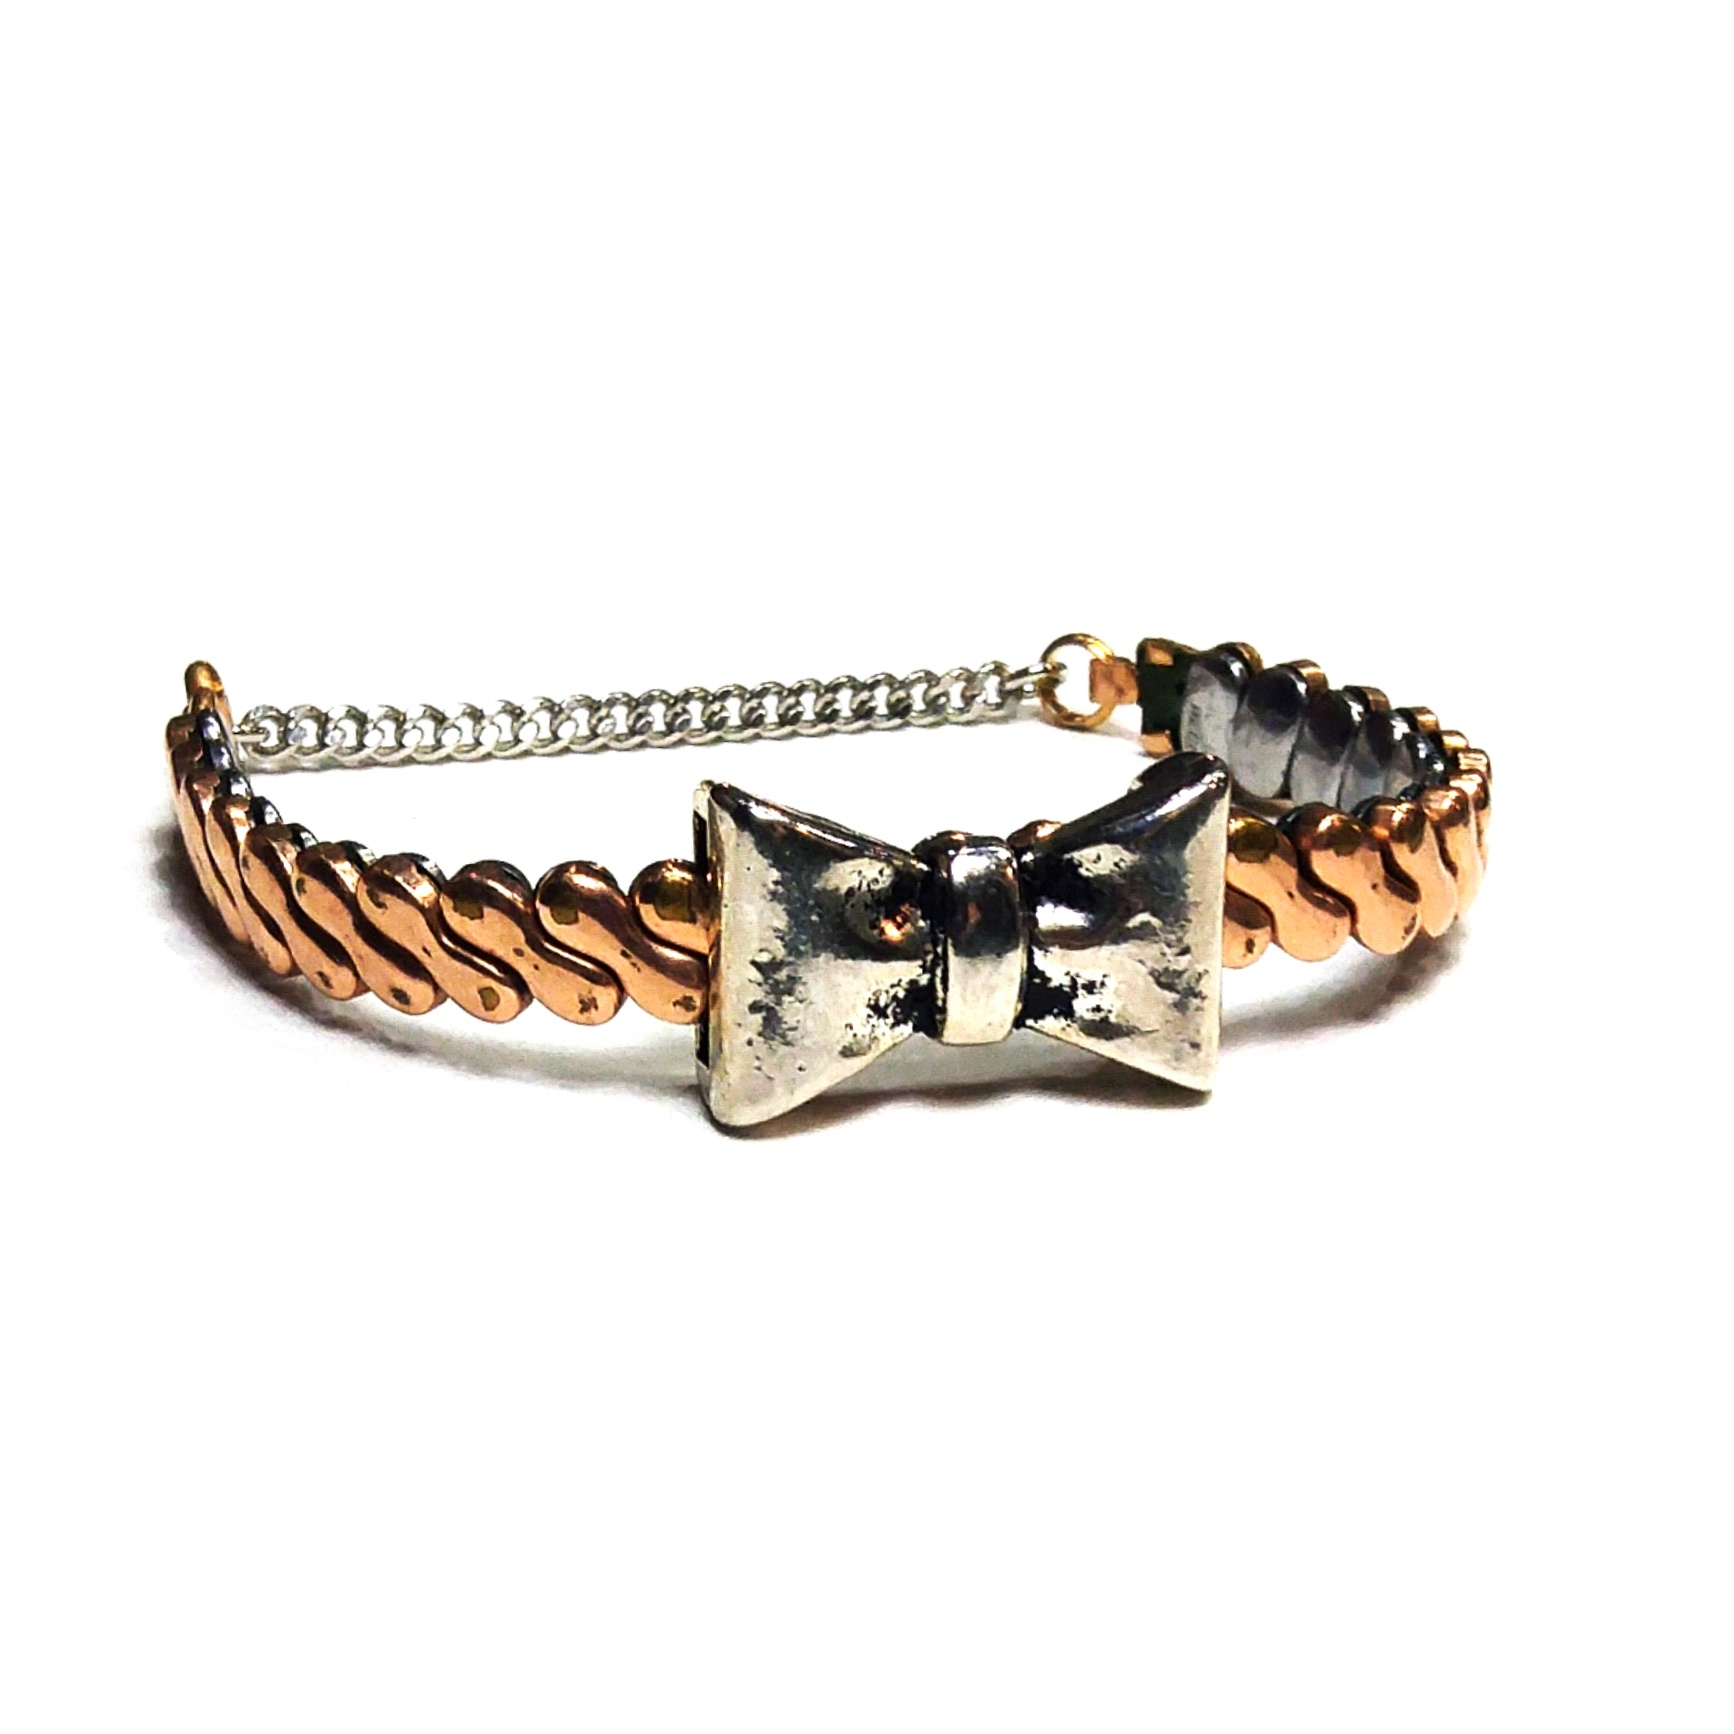 Easy to wear, easy to put on - bracelets made using expandable vintage watch bands are unique, cute and time saving